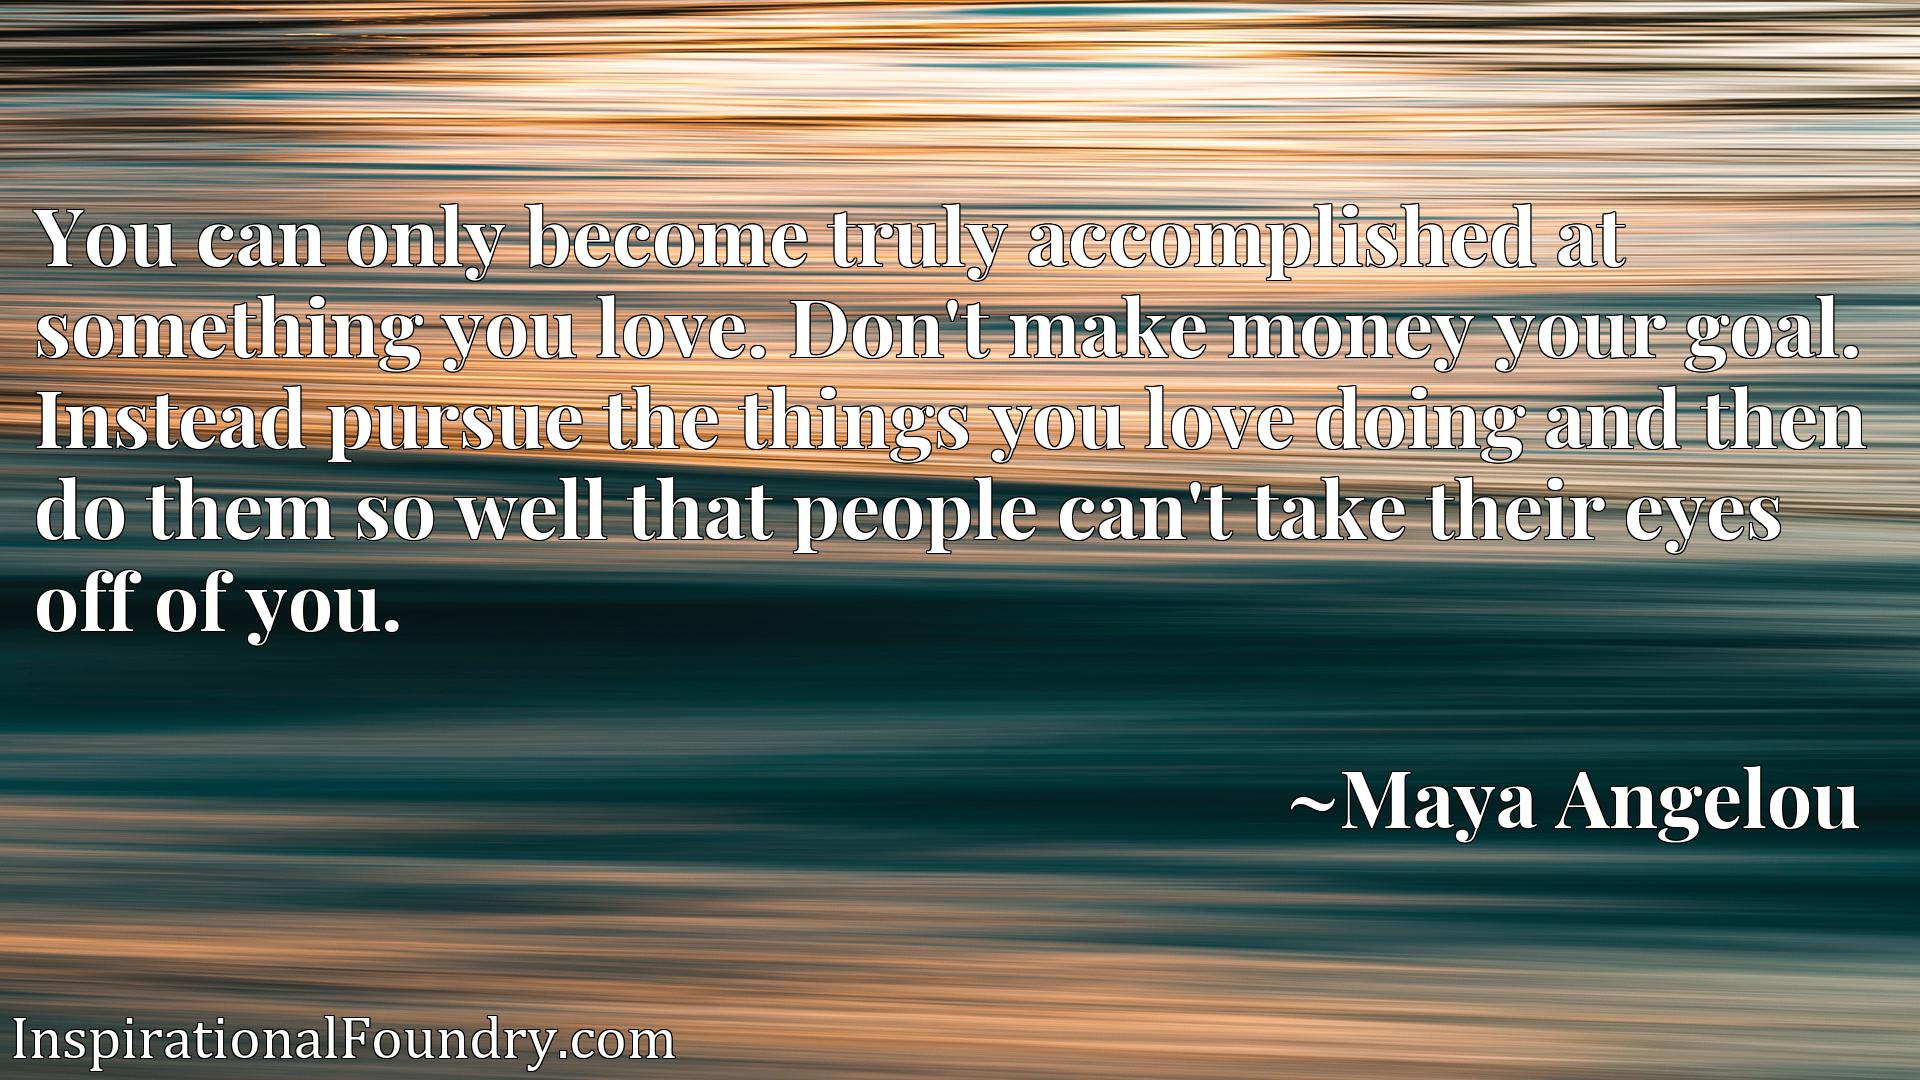 You can only become truly accomplished at something you love. Don't make money your goal. Instead pursue the things you love doing and then do them so well that people can't take their eyes off of you.